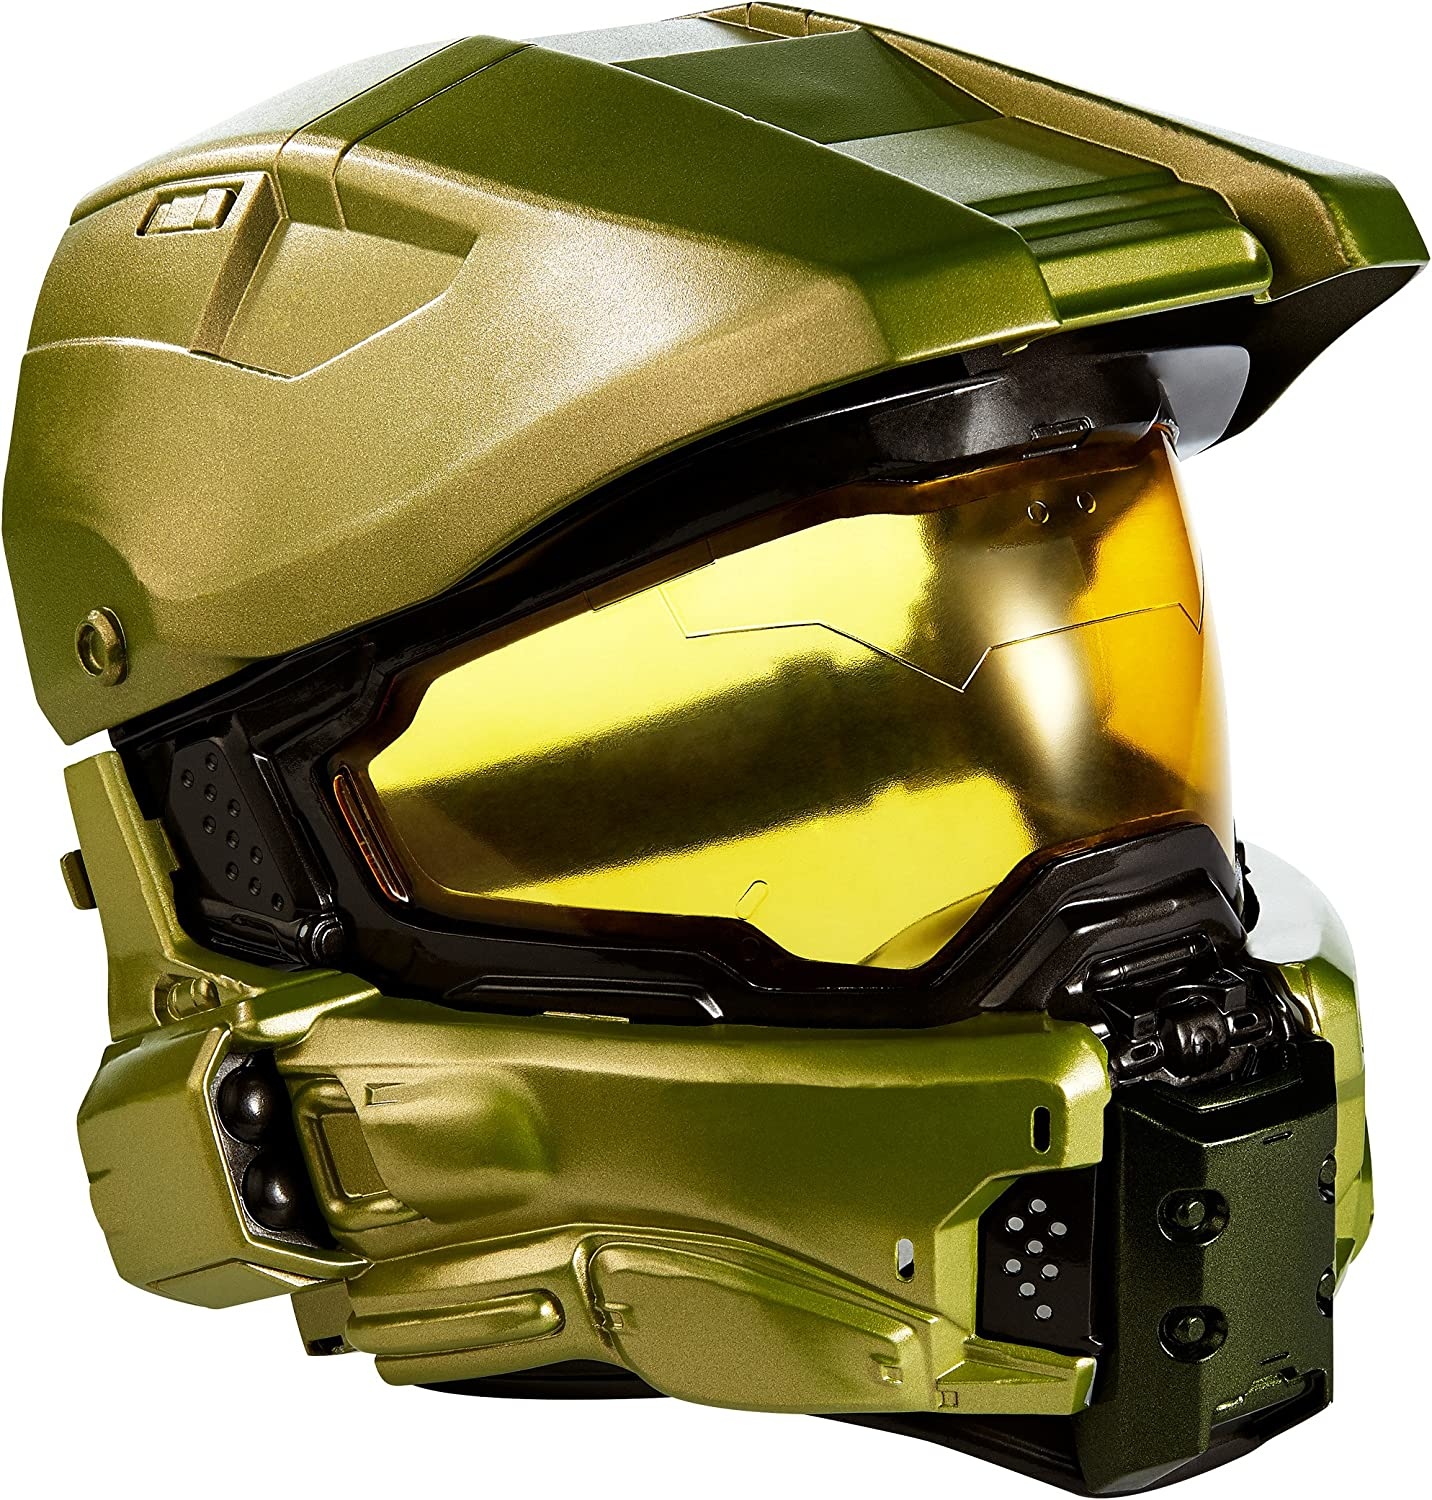 Halo Master Chief Tactical Helmet